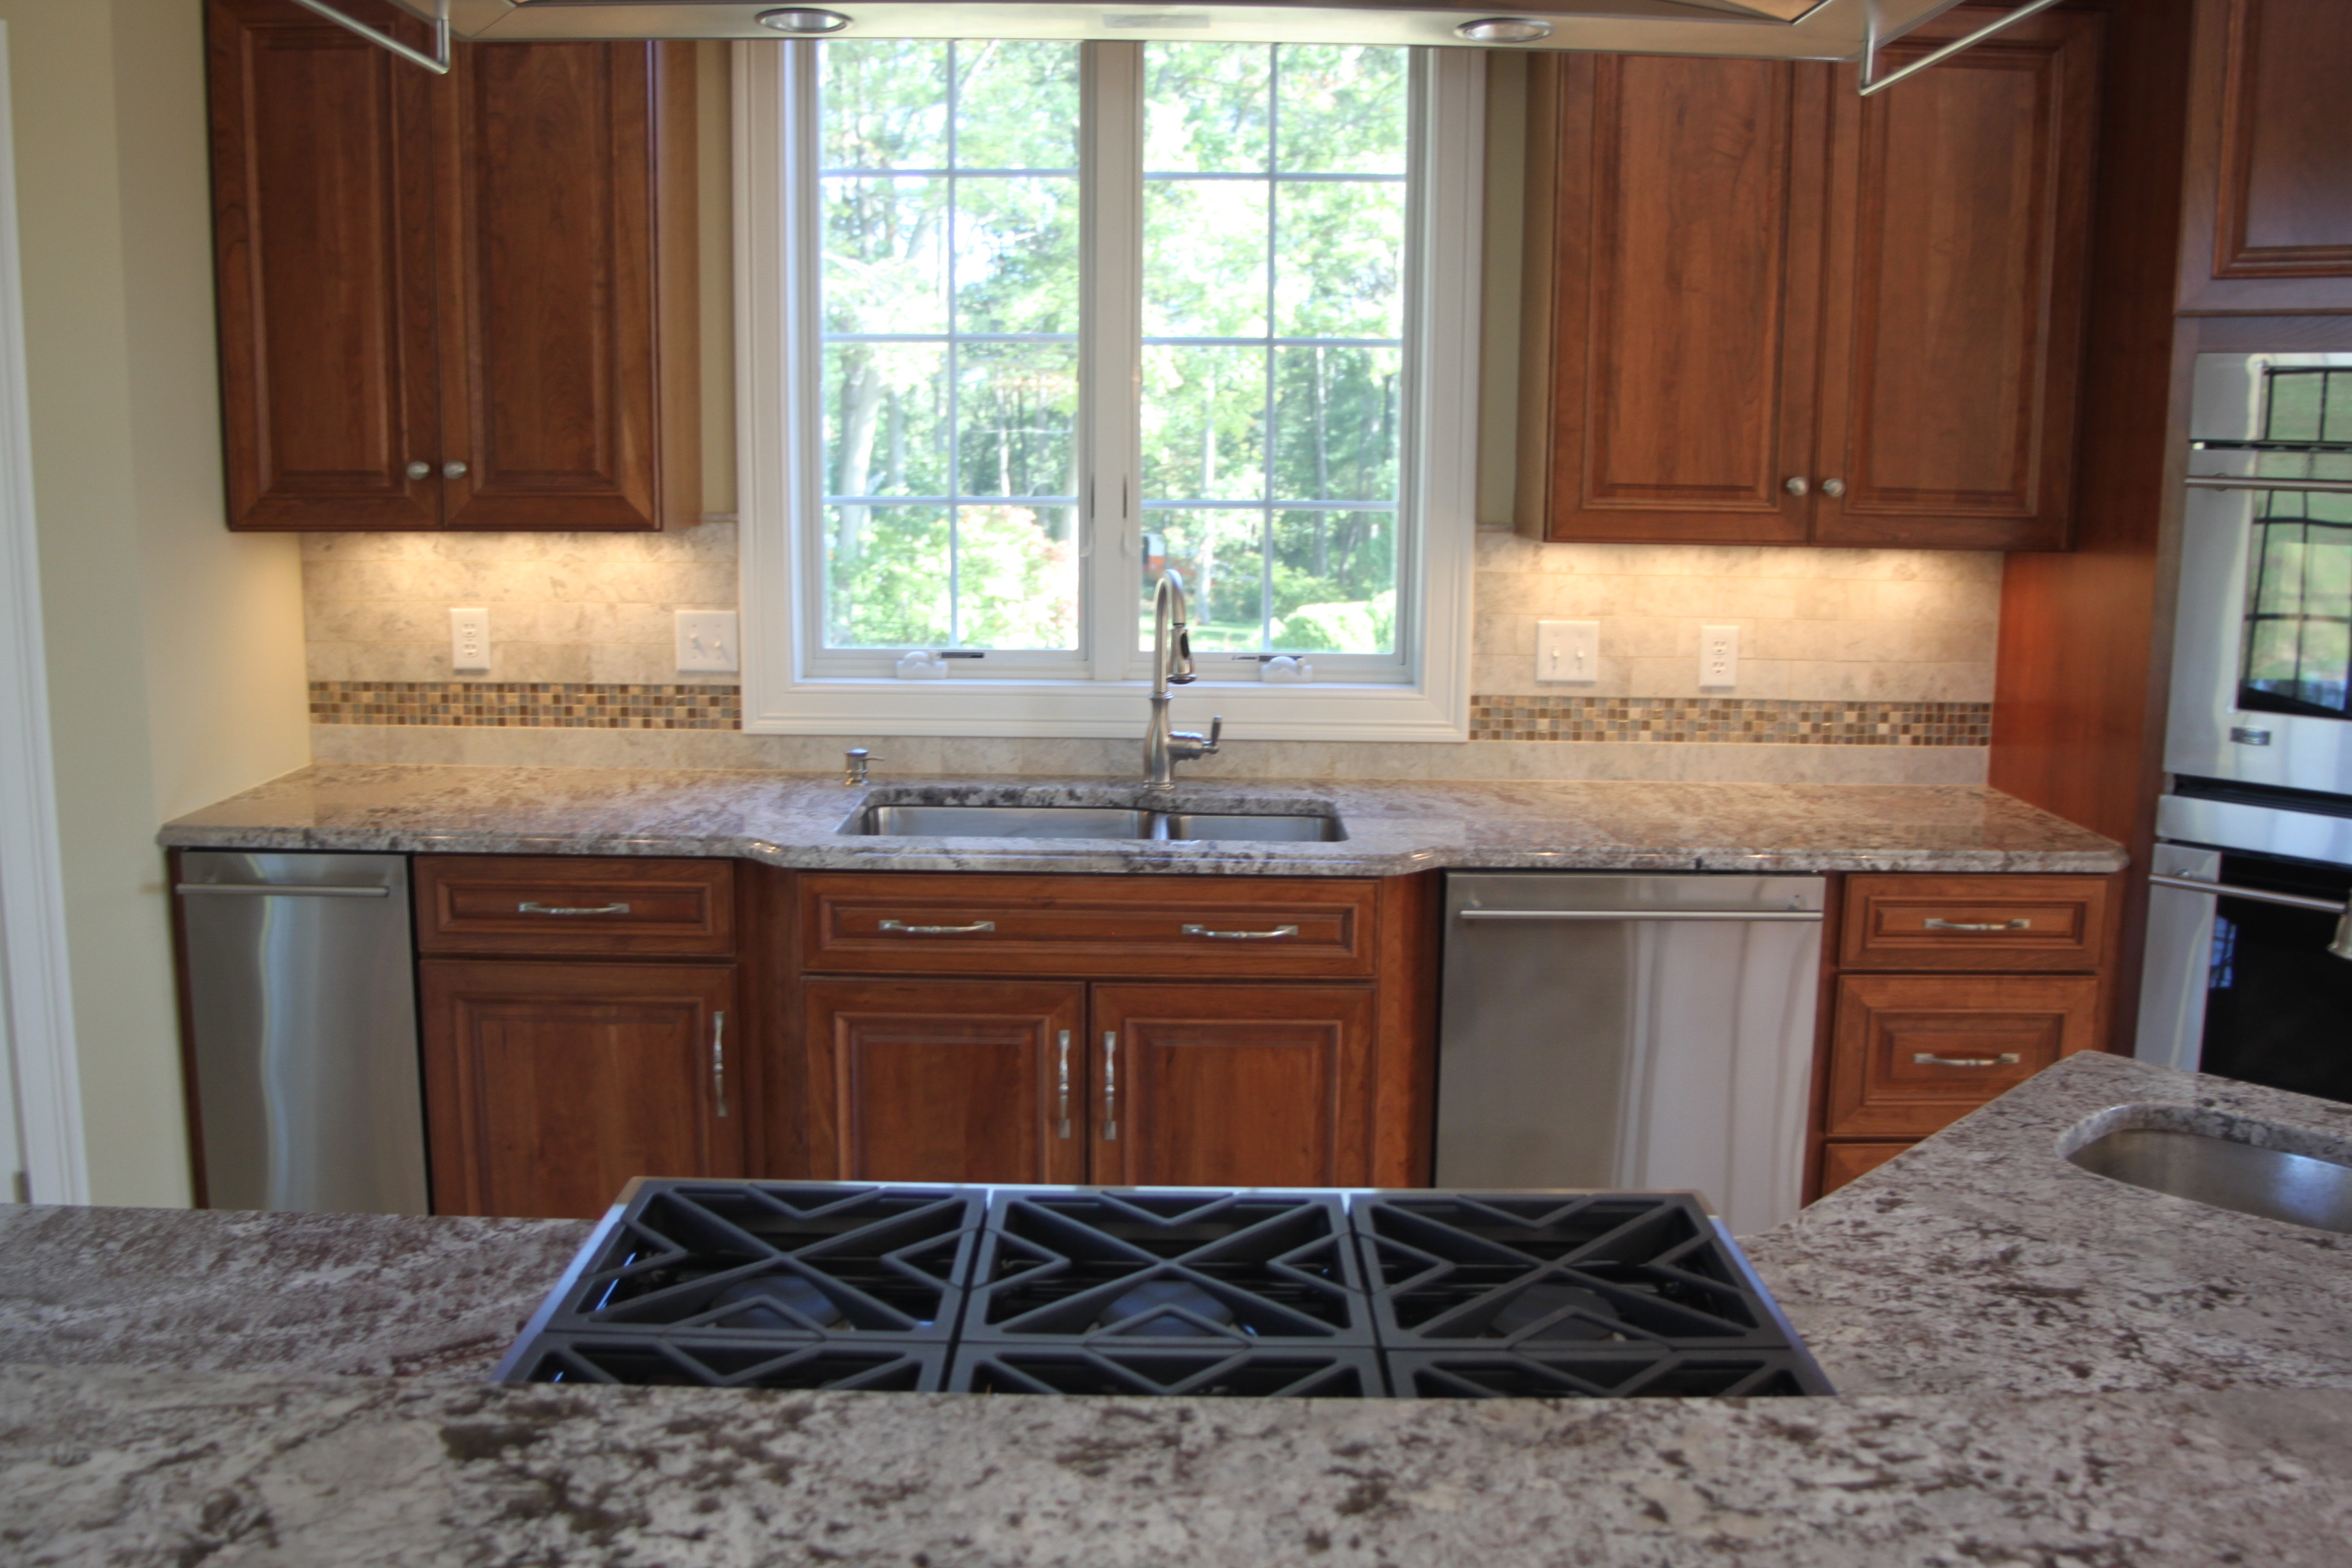 can you install hardwood floors in a basement of should your flooring match your kitchen cabinets or countertops regarding should your flooring match your kitchen cabinets or countertops